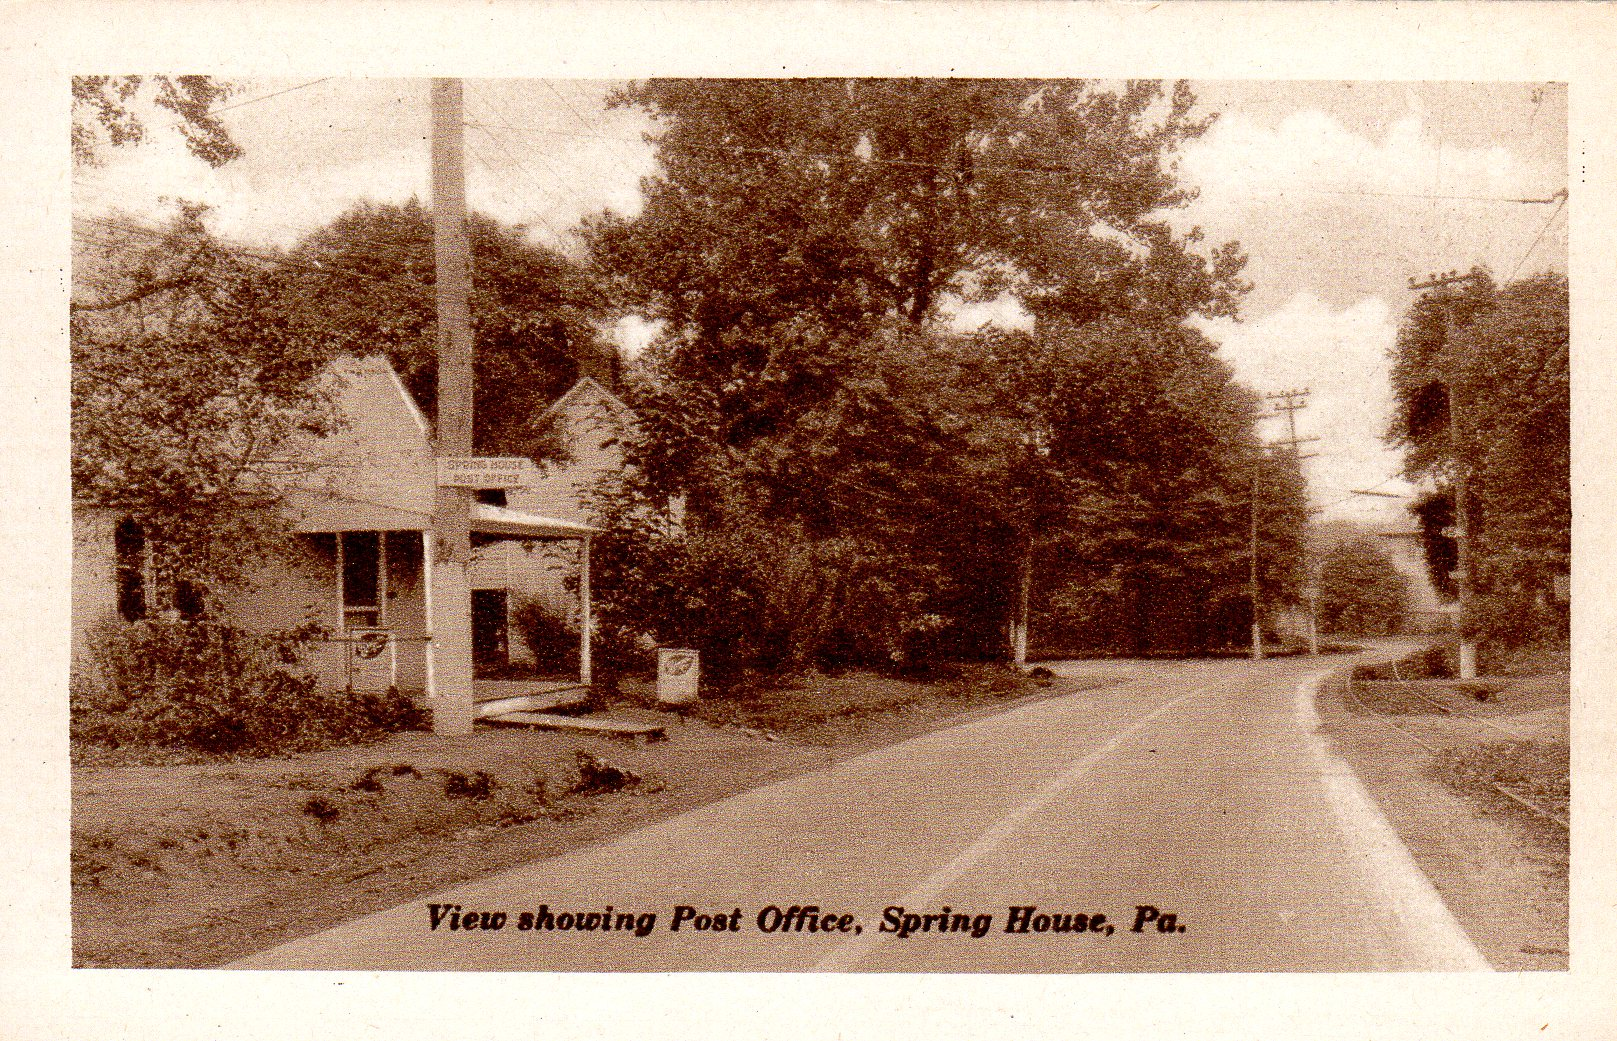 Post Card Collection (E Simon)_2682_73_View Showing Post Office, Spring House, Pa